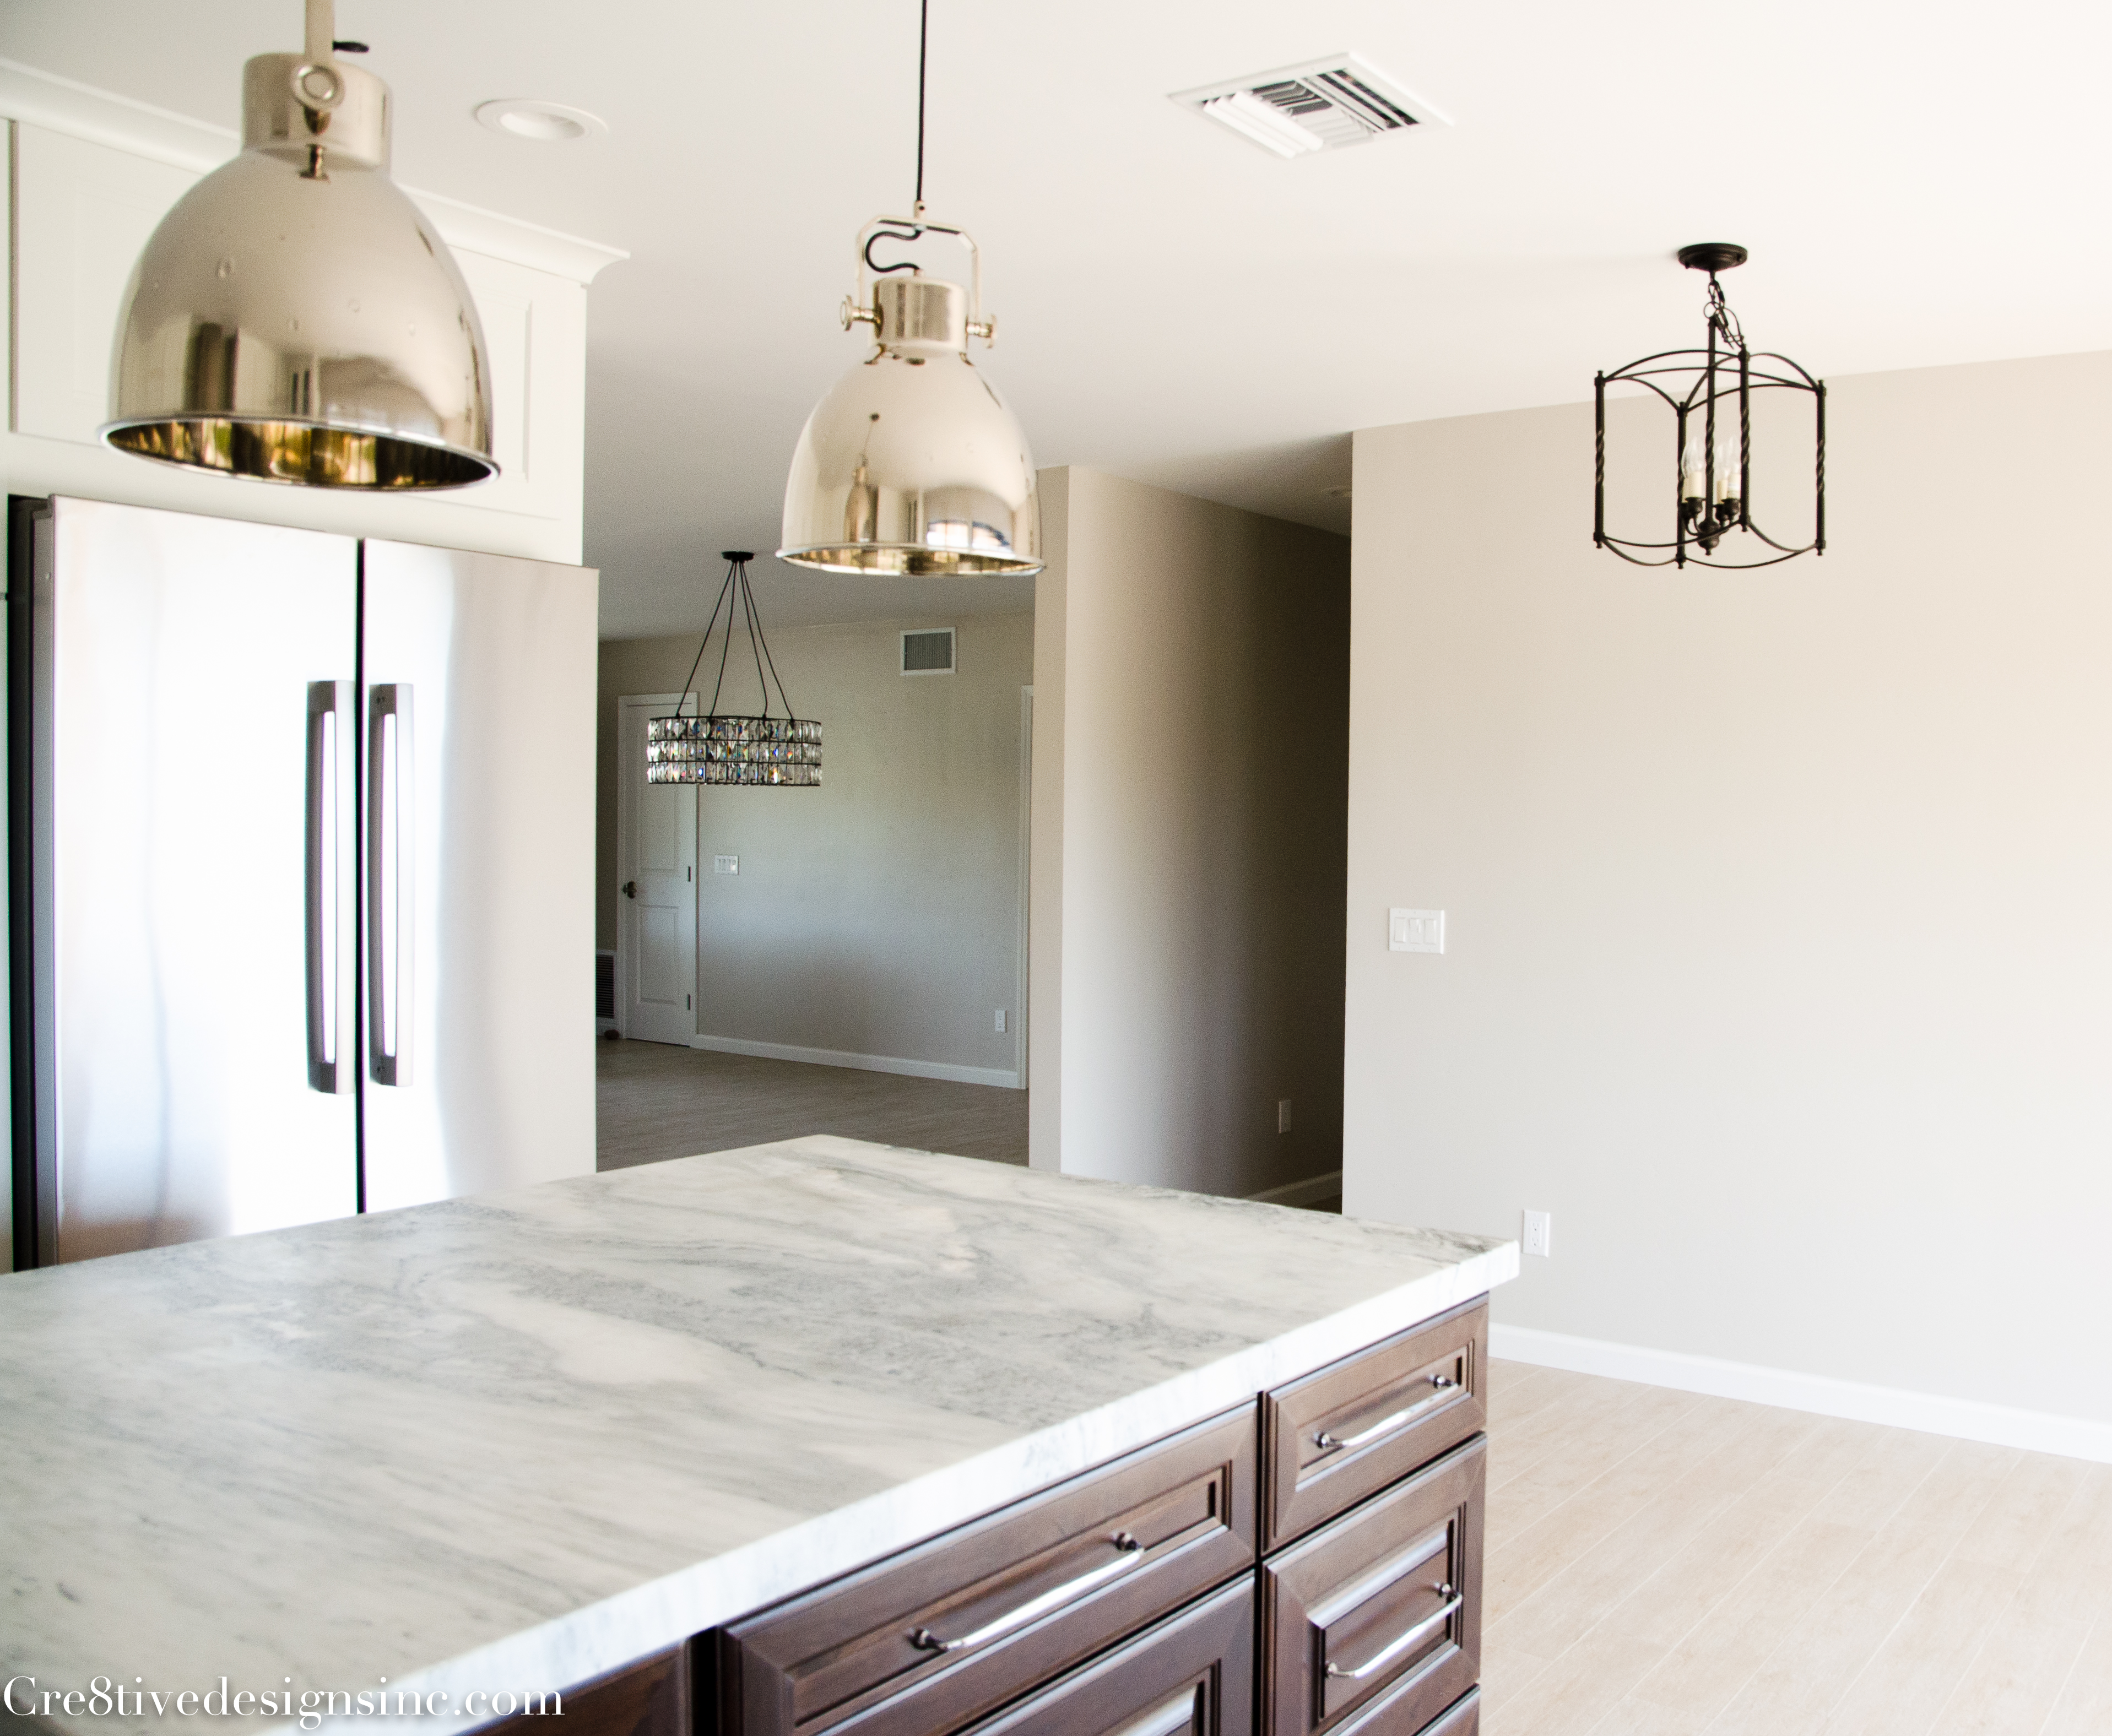 Trend Lighting in a remodeled kitchen